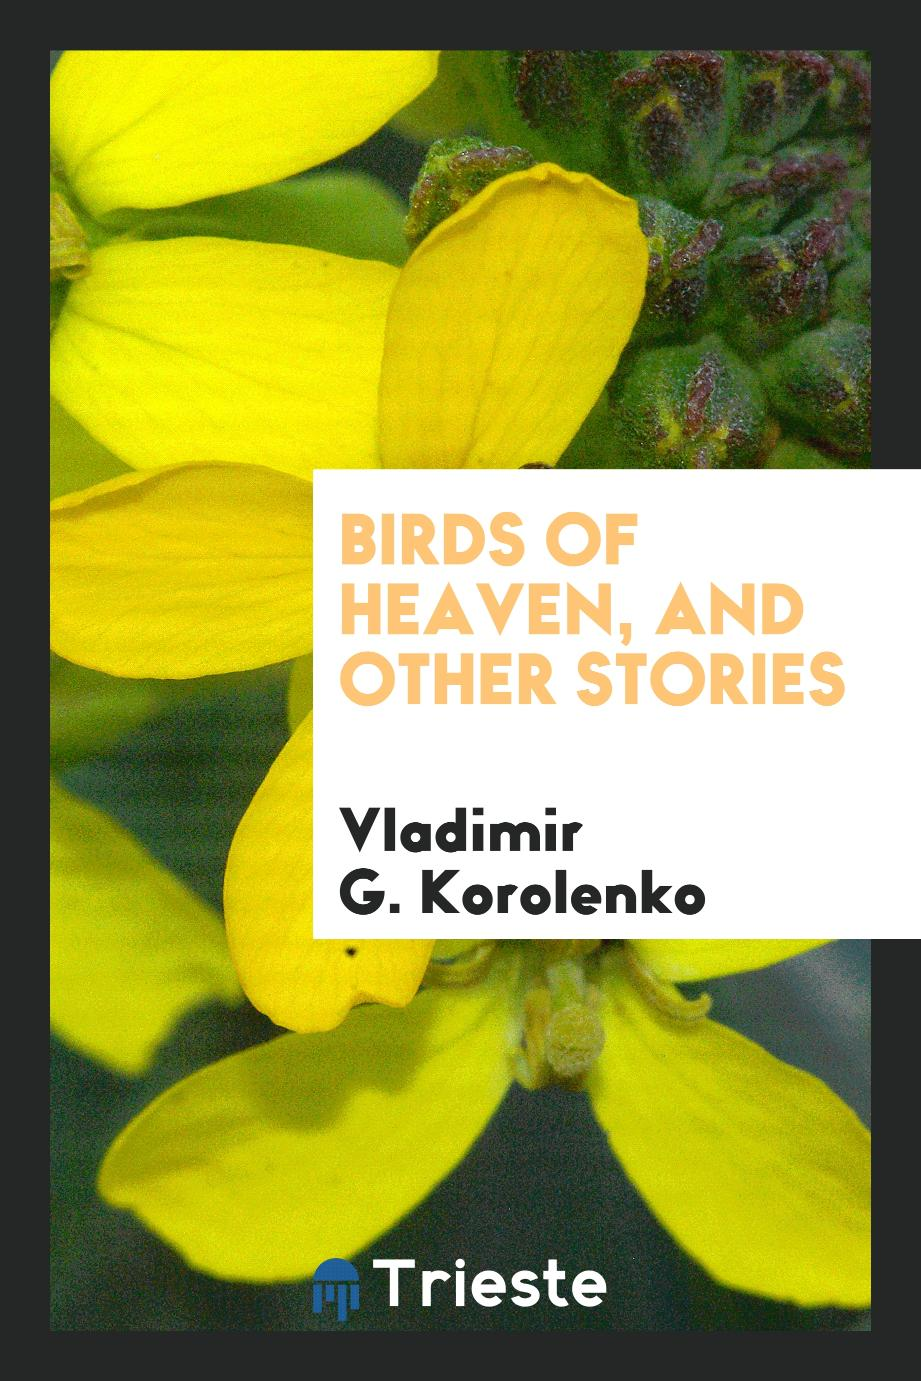 Birds of heaven, and other stories